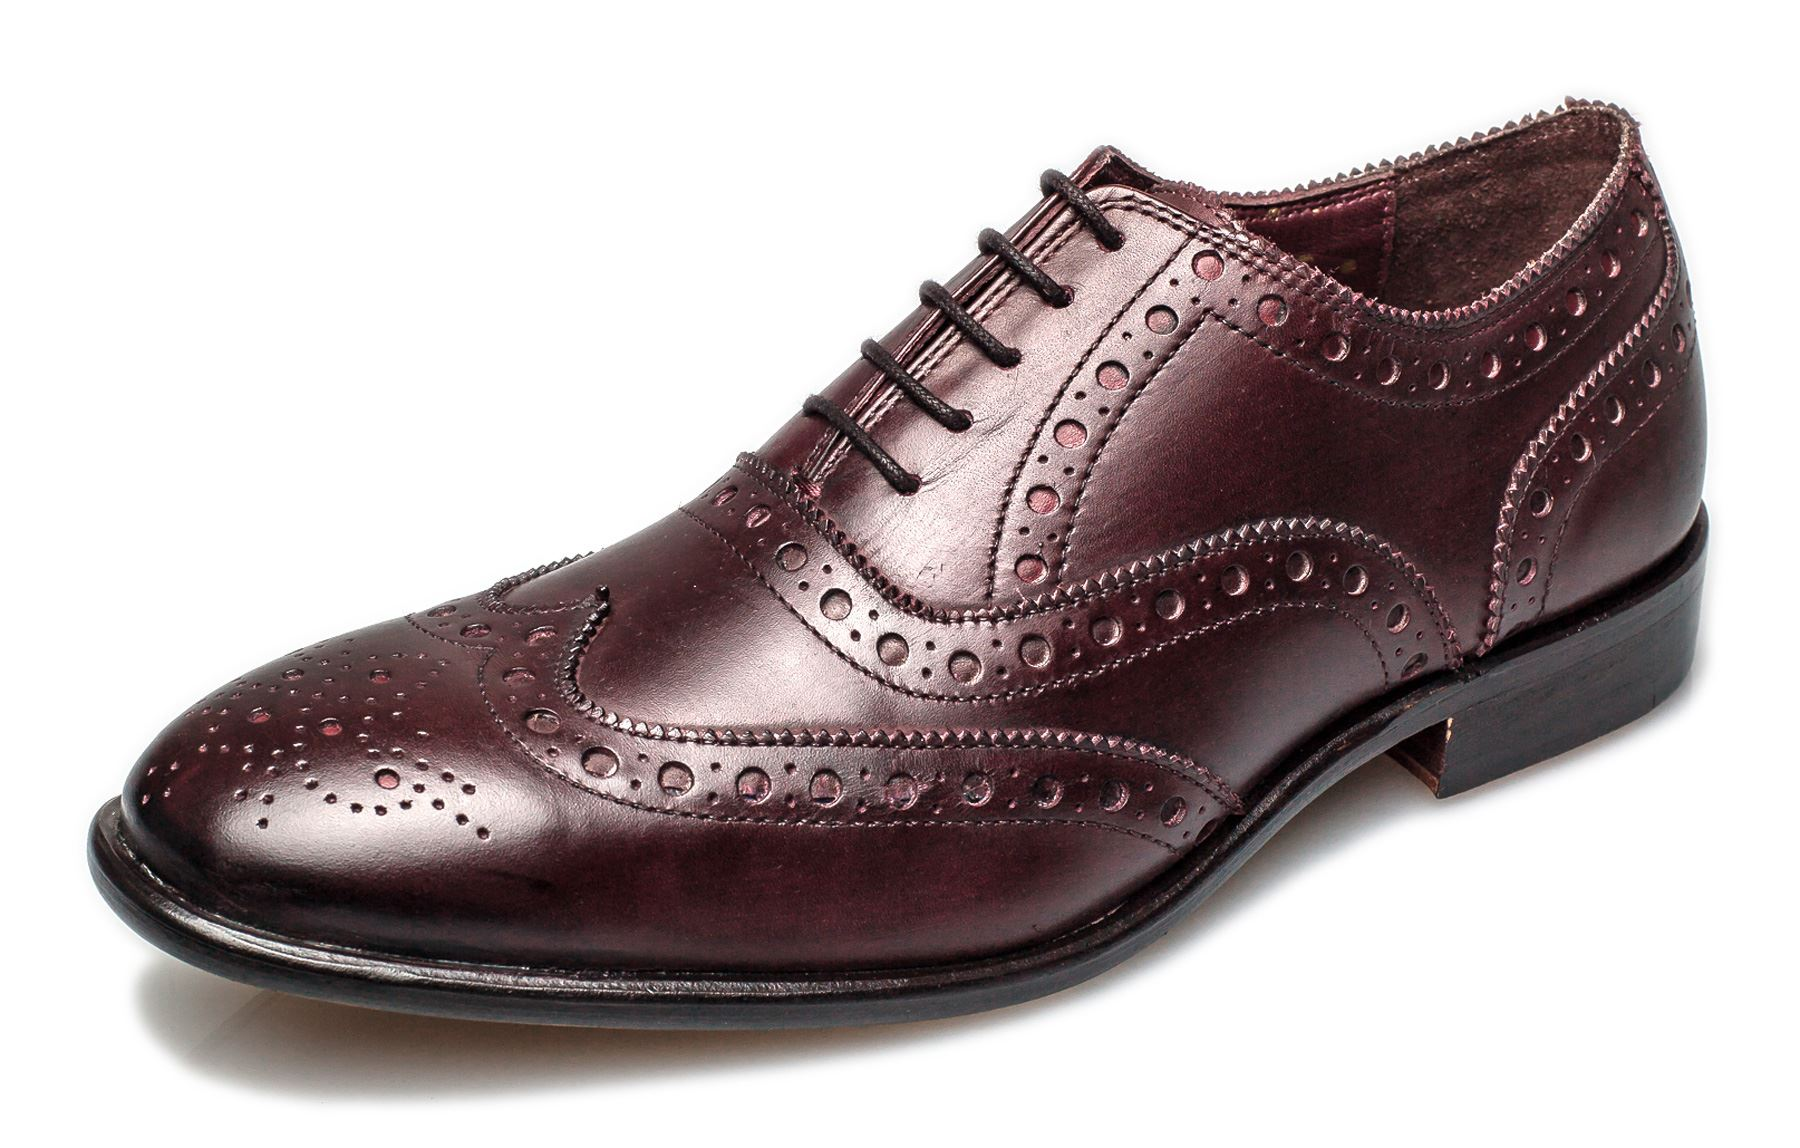 Hackett Full Suede Brogues. Most brogues are made from calf leather, but depending how formal you want to go you can swap the tried and tested out for a suede variation. As previously mentioned, the perforations were originally used to provide drainage, but a suede pair is probably not best suited to treading the marshes.